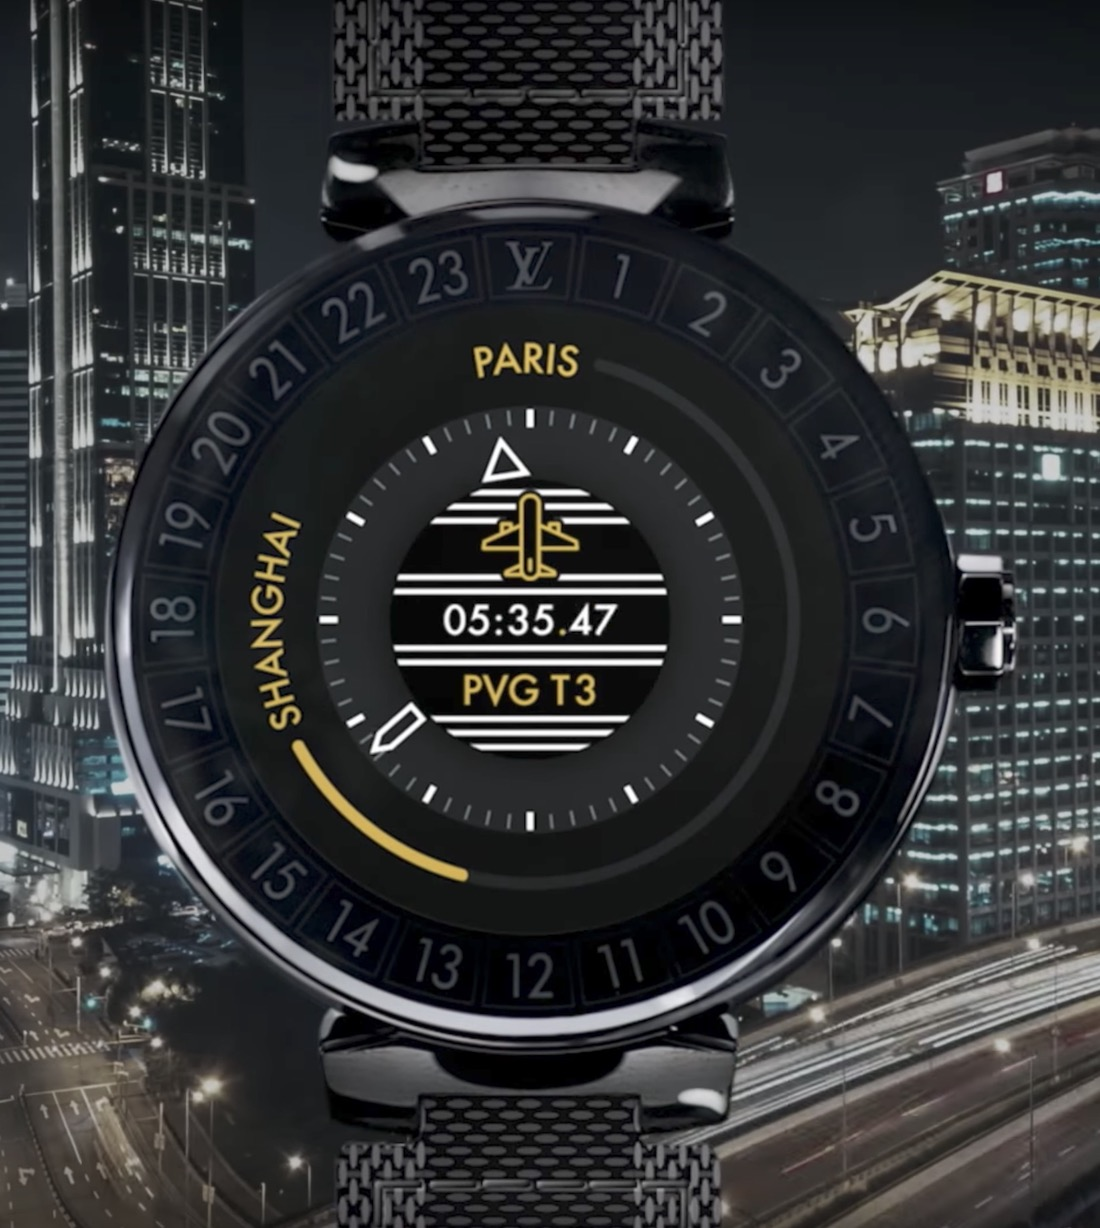 Louis-Vuitton-Tambour-Horizon-Smartwatch-5.jpg